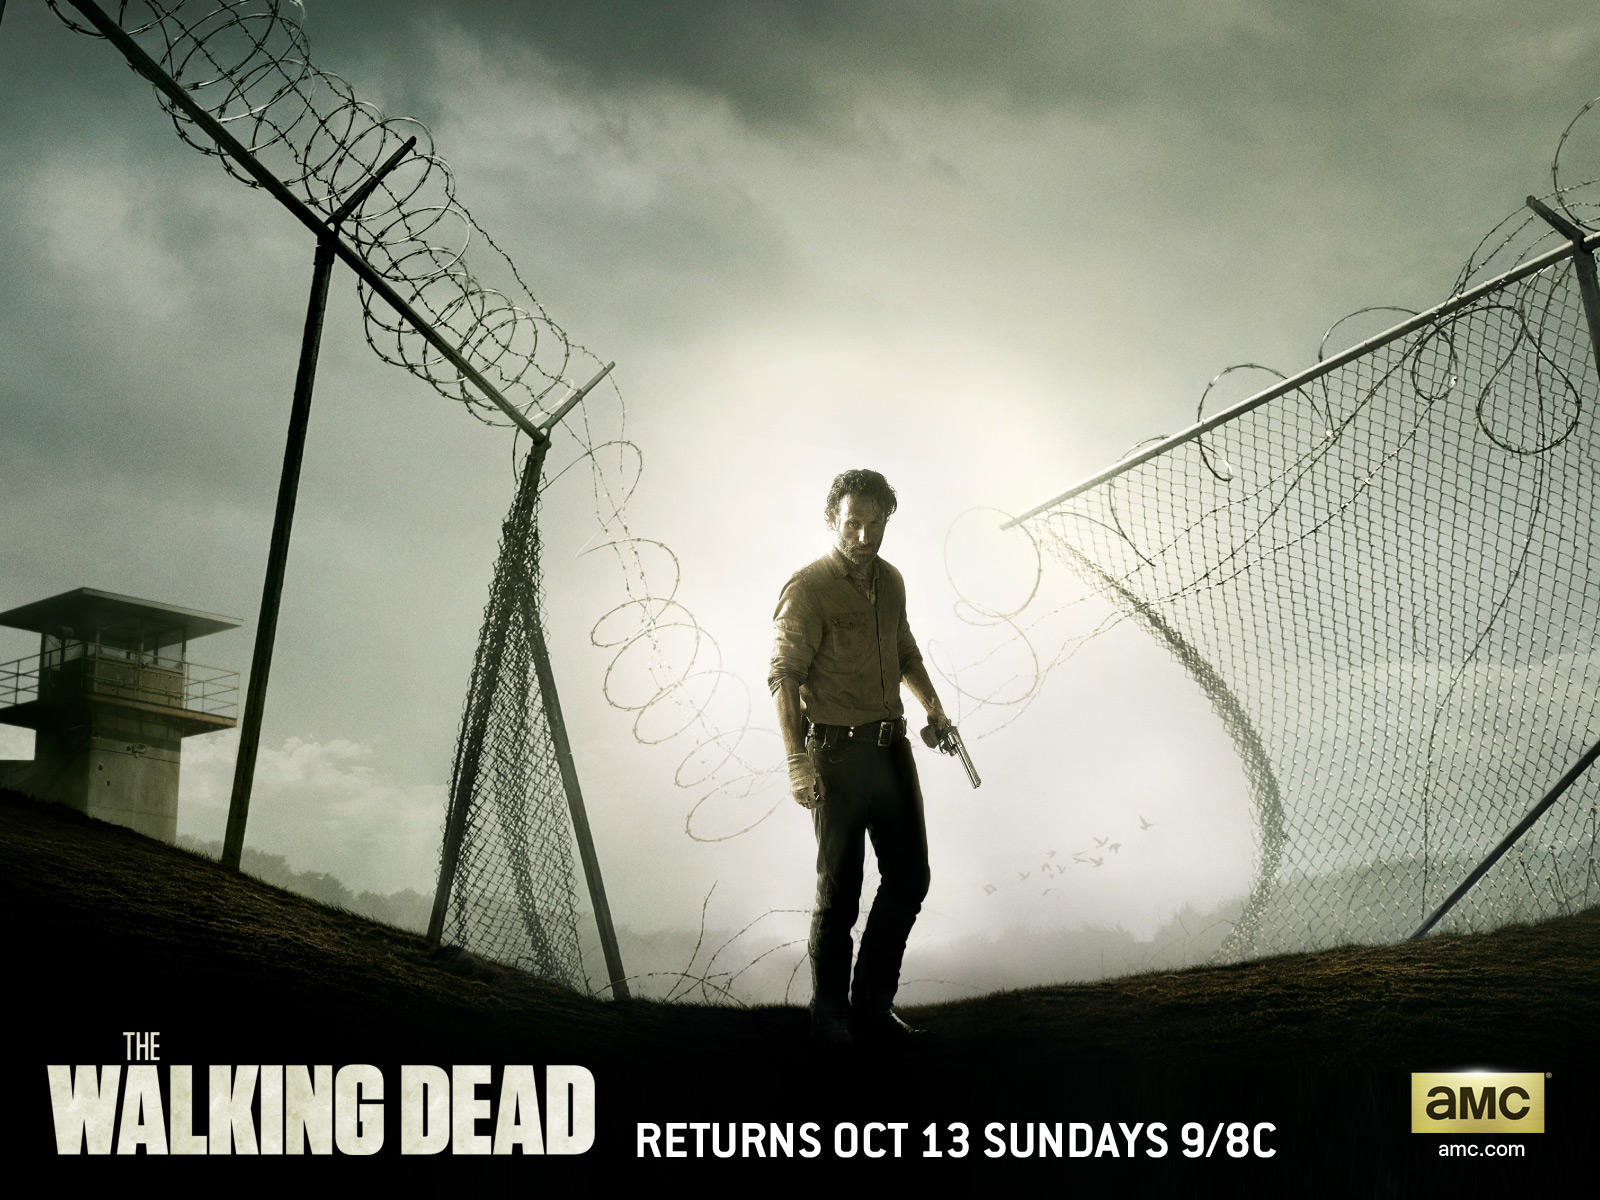 Iphone X Moving Wallpaper The Walking Dead Season 4 Wallpapers The Walking Dead